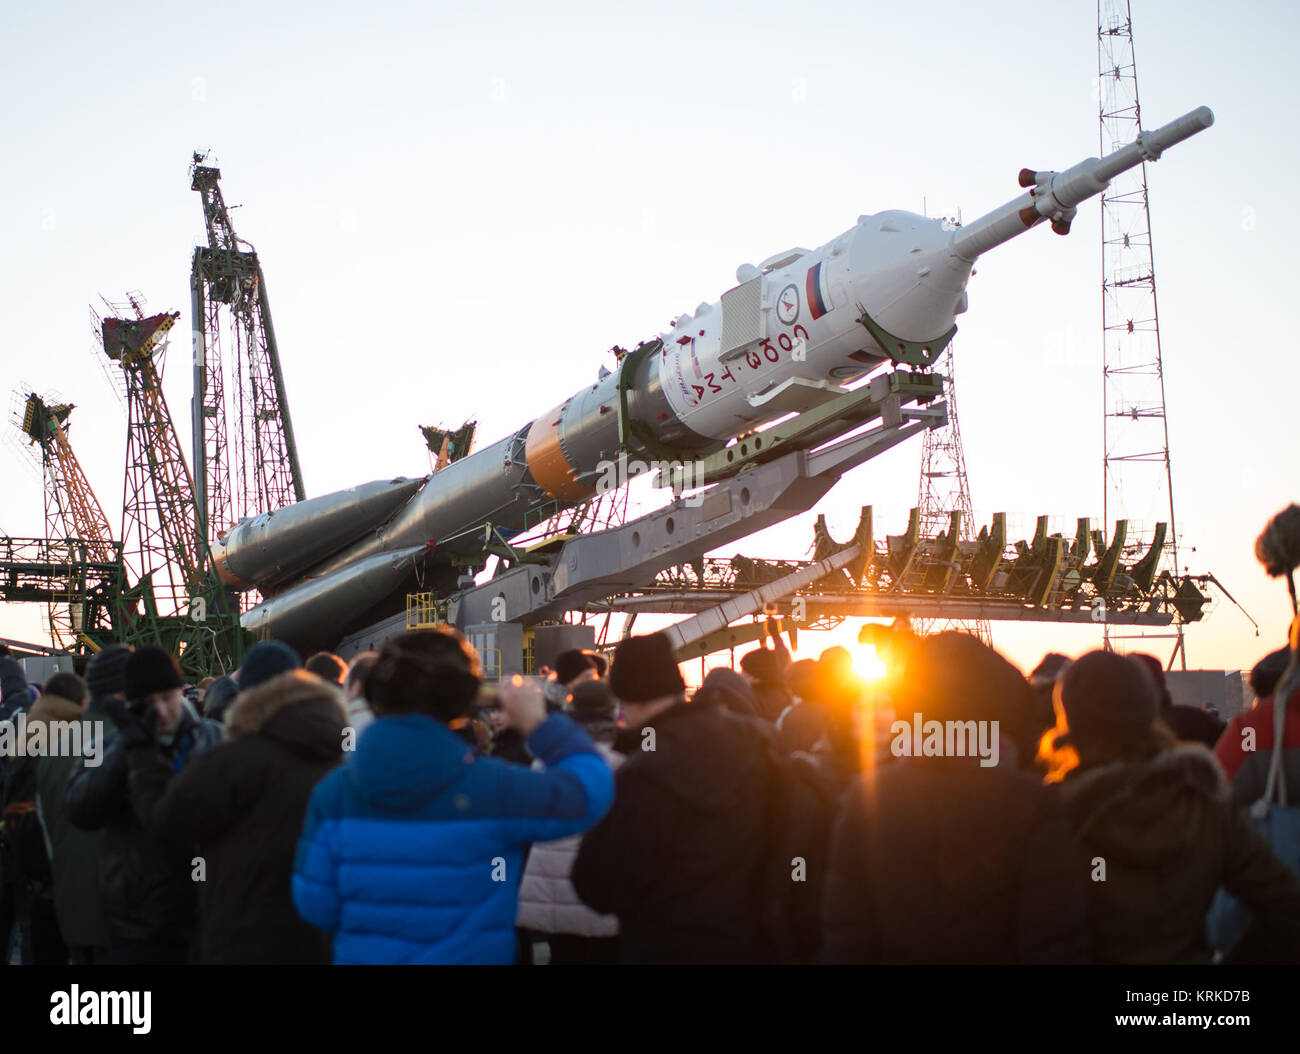 The Soyuz TMA-19M spacecraft is seen as it is raised into a vertical position on the launch pad at the Baikonur - Stock Image